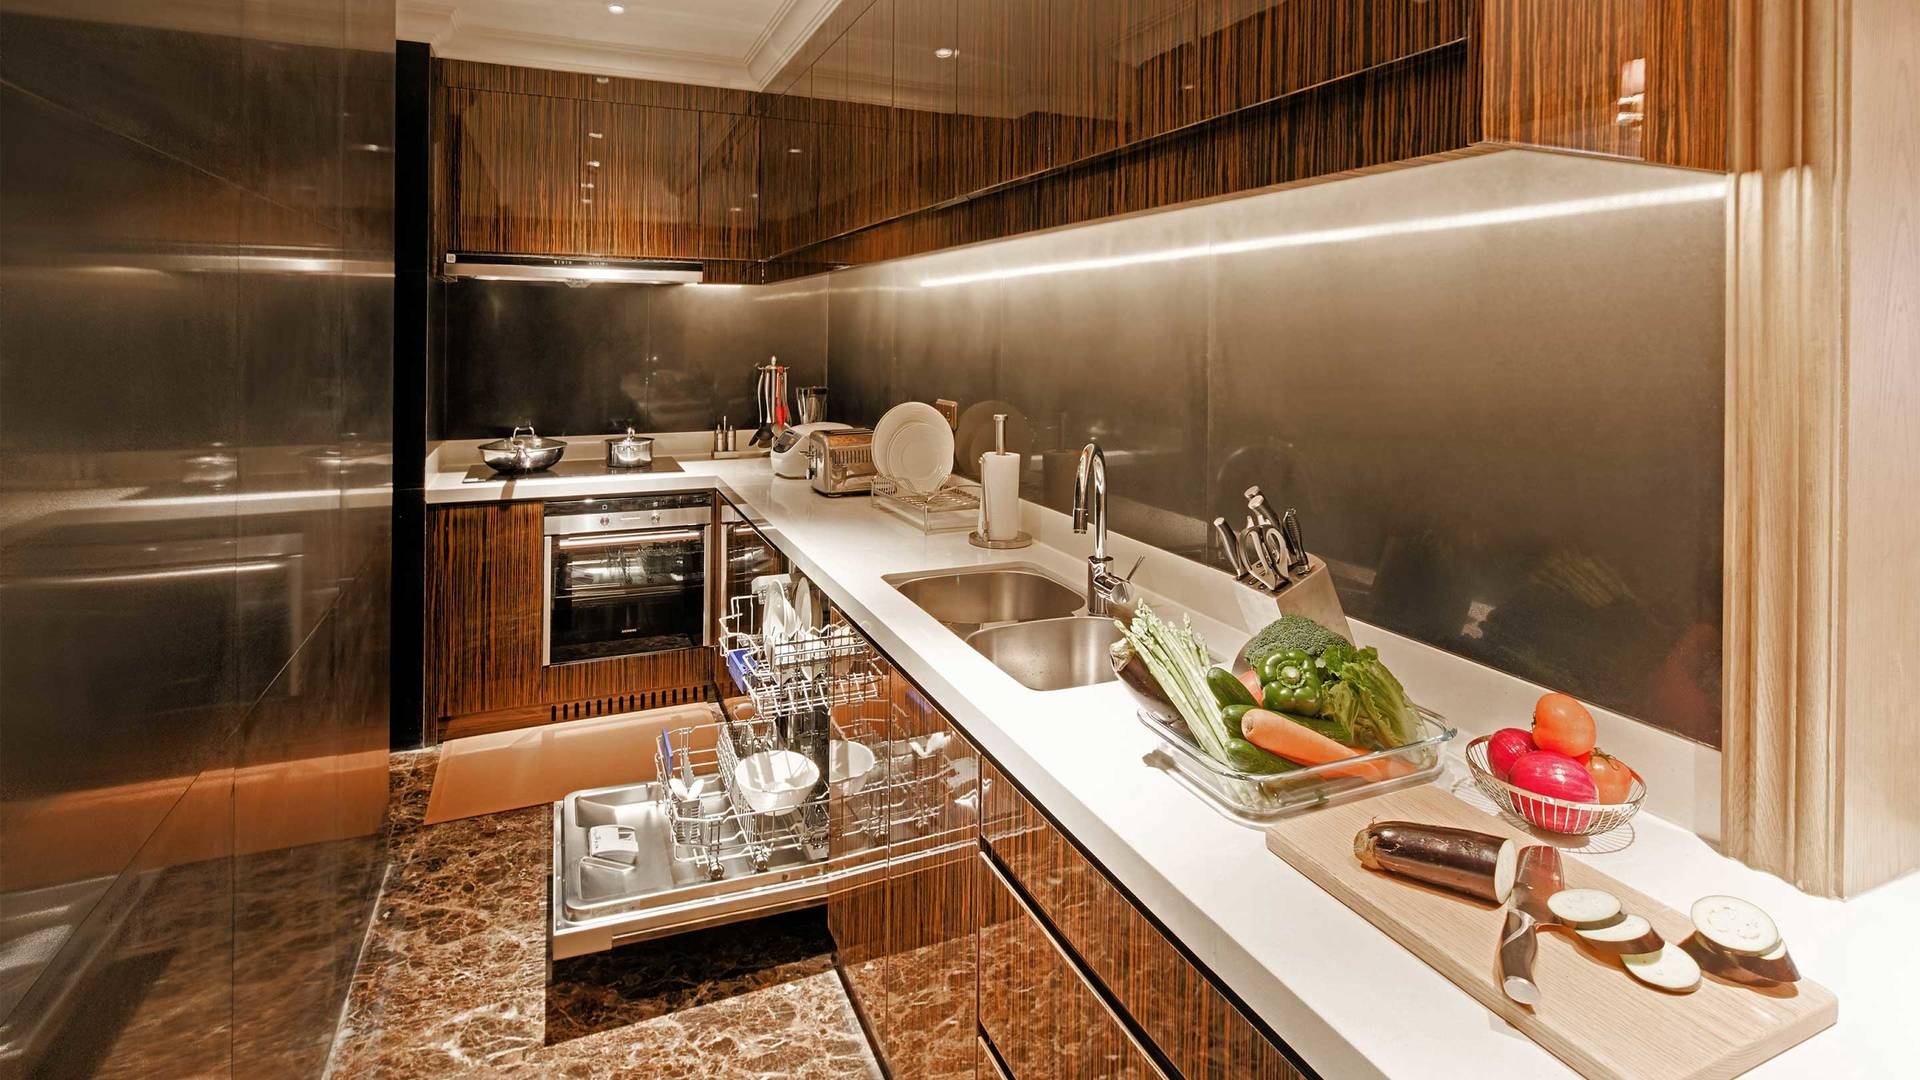 16-9 JUMEIRAH LIVING GUANGZHOU Kitchen Classic 3 bedroom